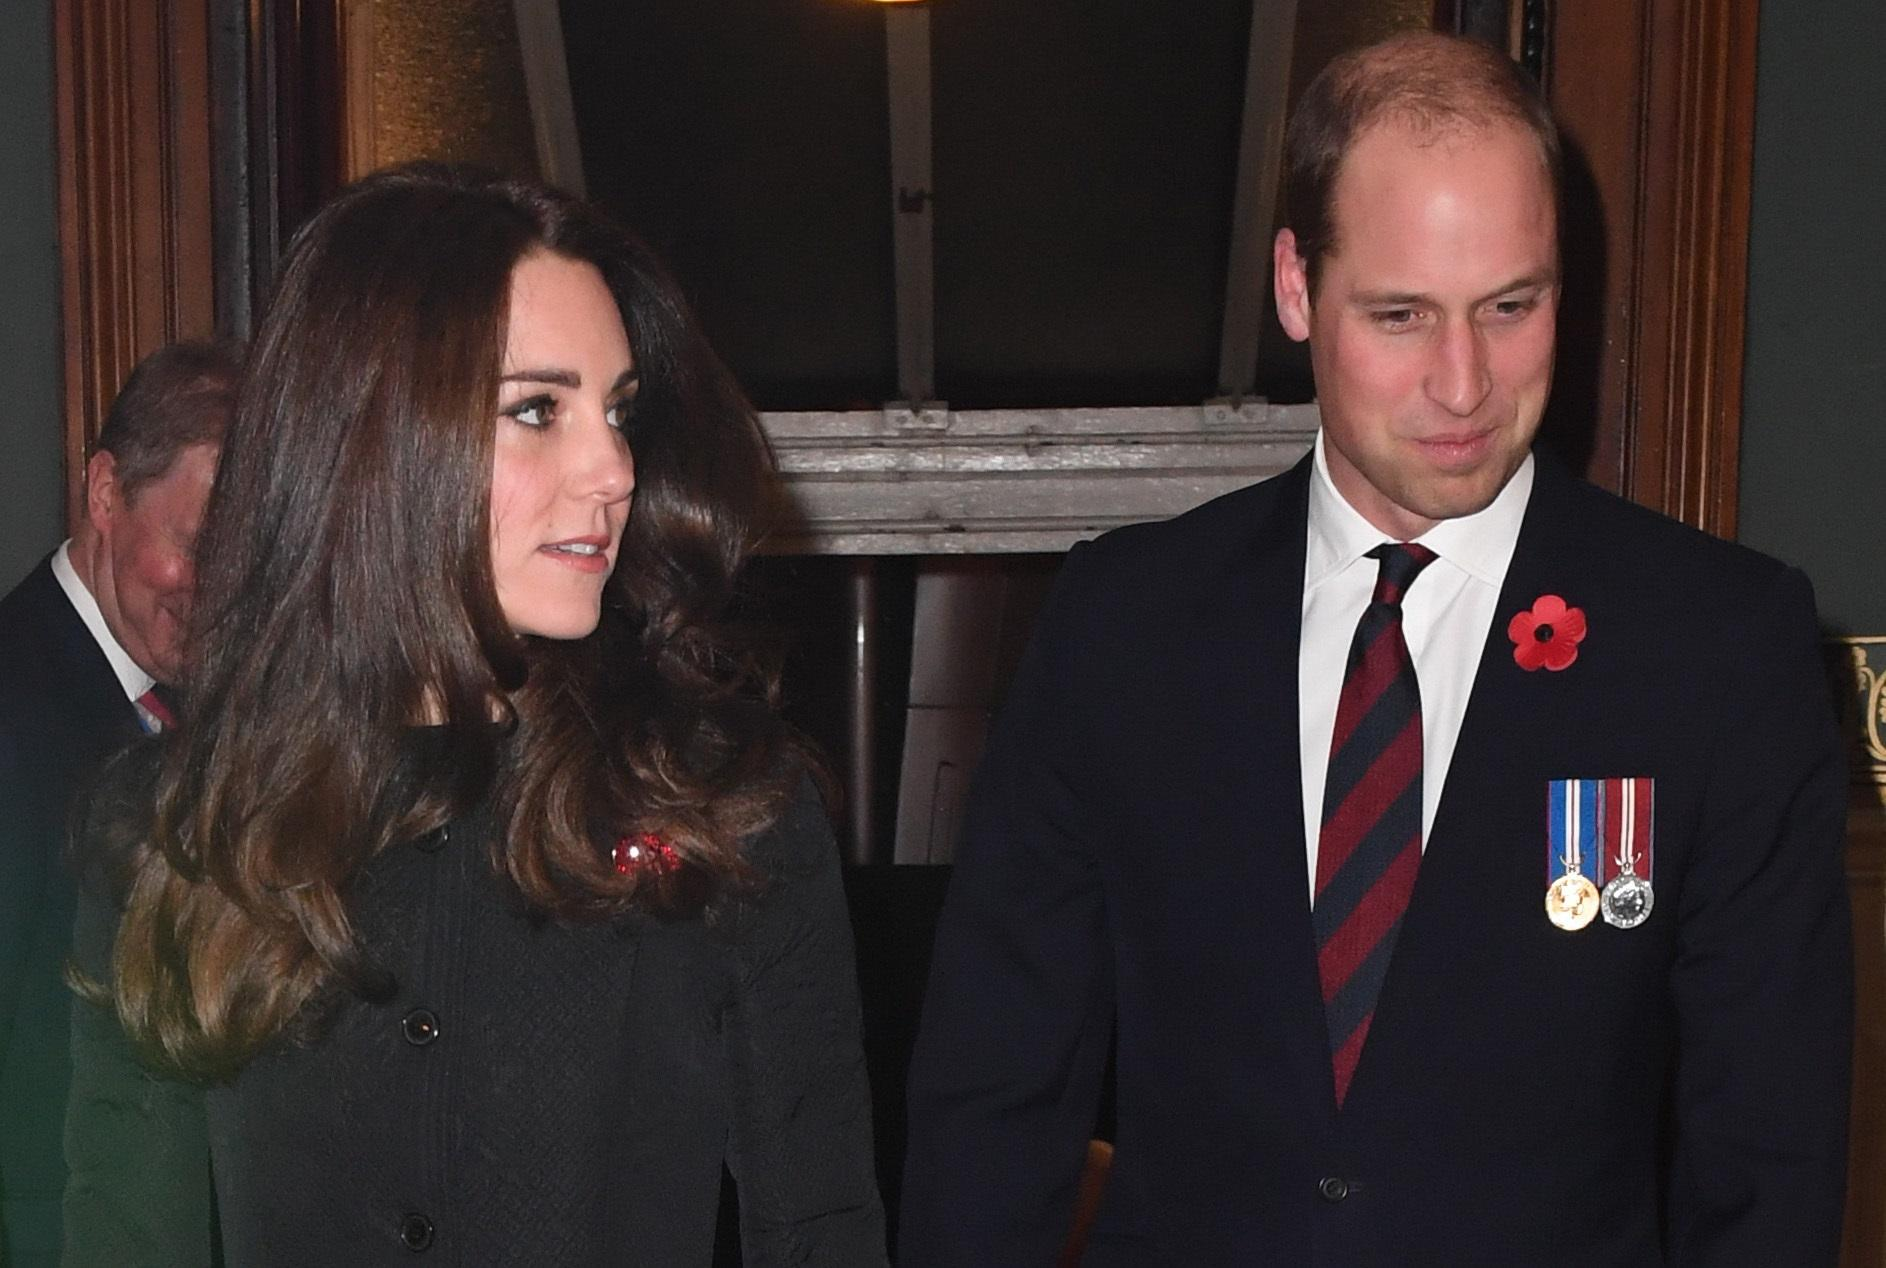 Kate Middleton Dons an Arm Sling for Cub Scouts Outing